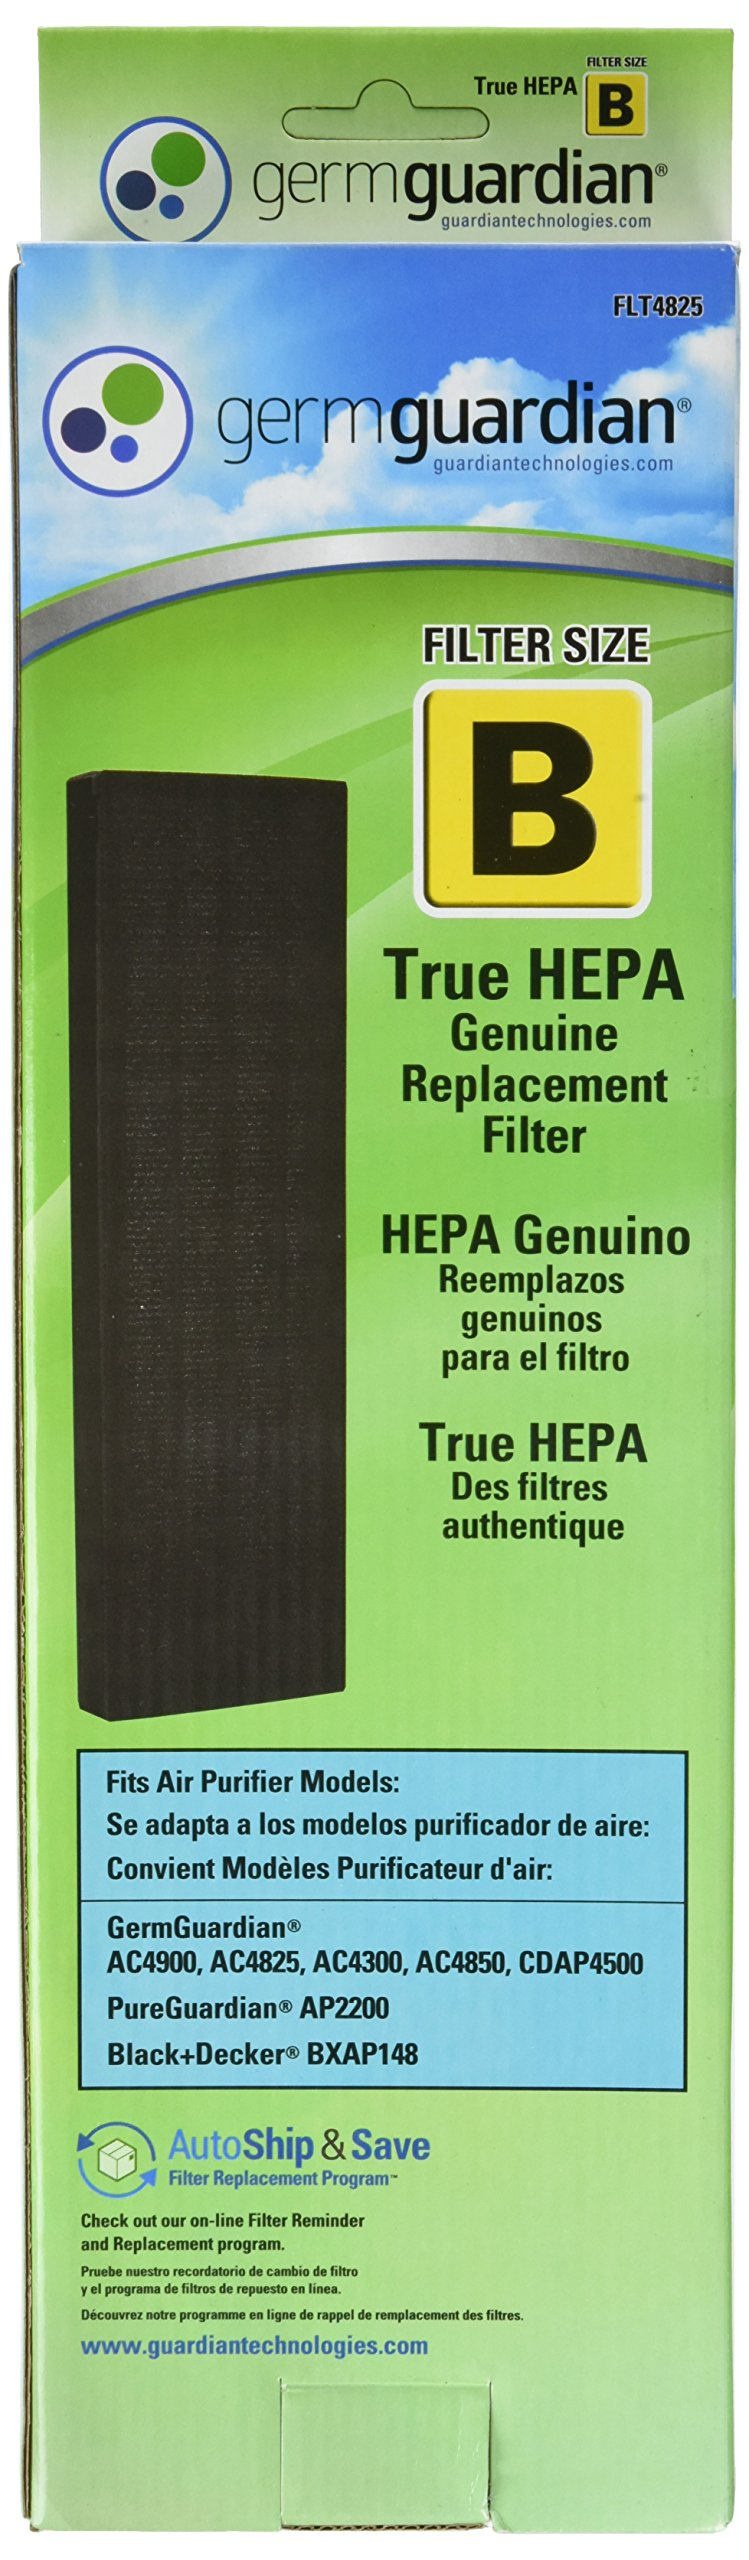 GermGuardian Air Purifier Filter FLT4825 GENUINE True HEPA Replacement Filter B for AC4300/AC4800/4900 Series Germ Guardian Air Purifiers